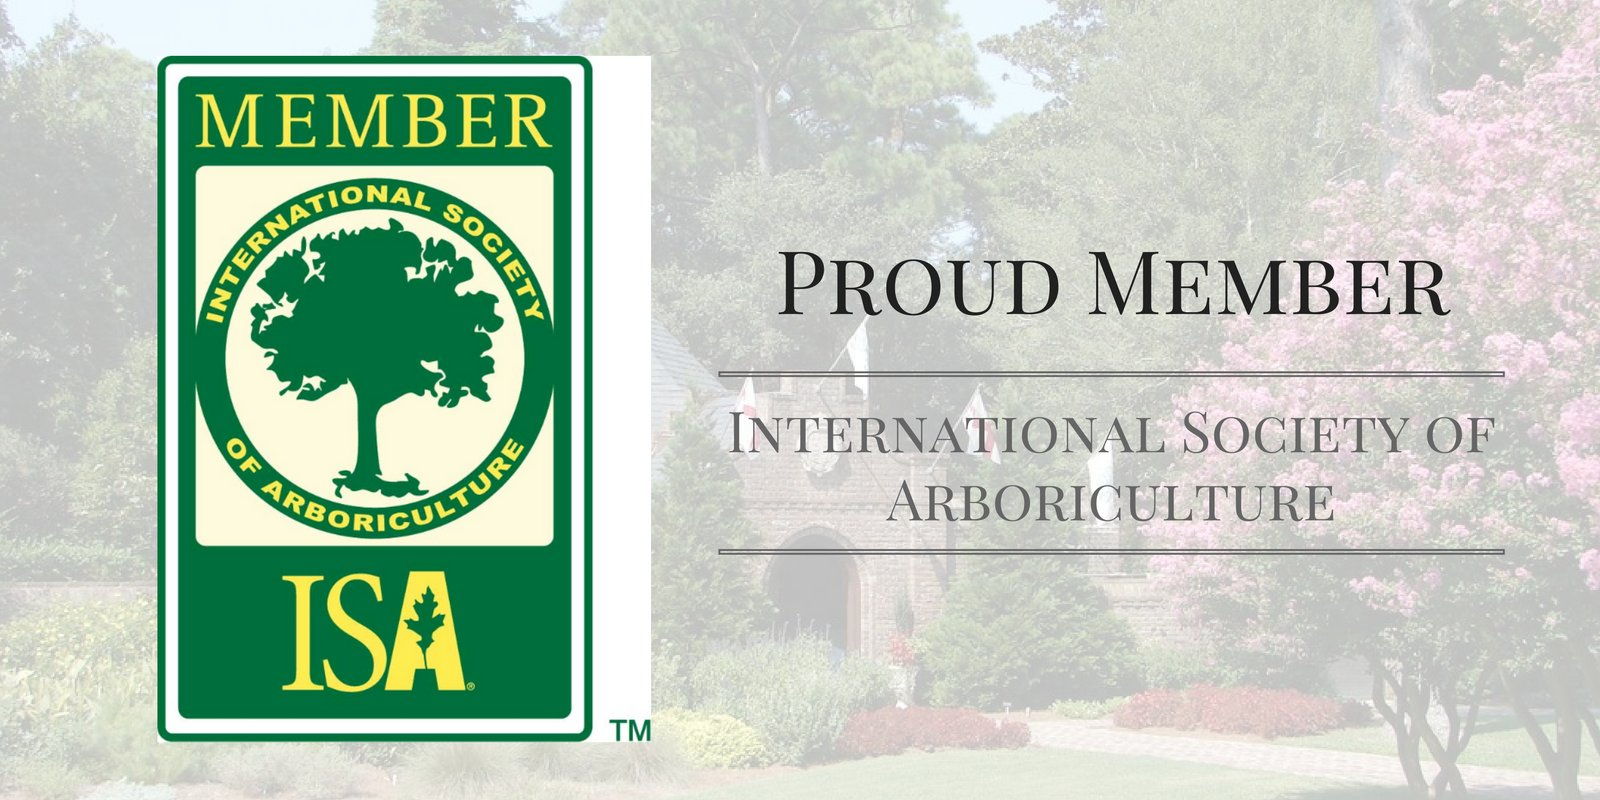 Four Seasons Landscaping proud member of international society of arboriculture